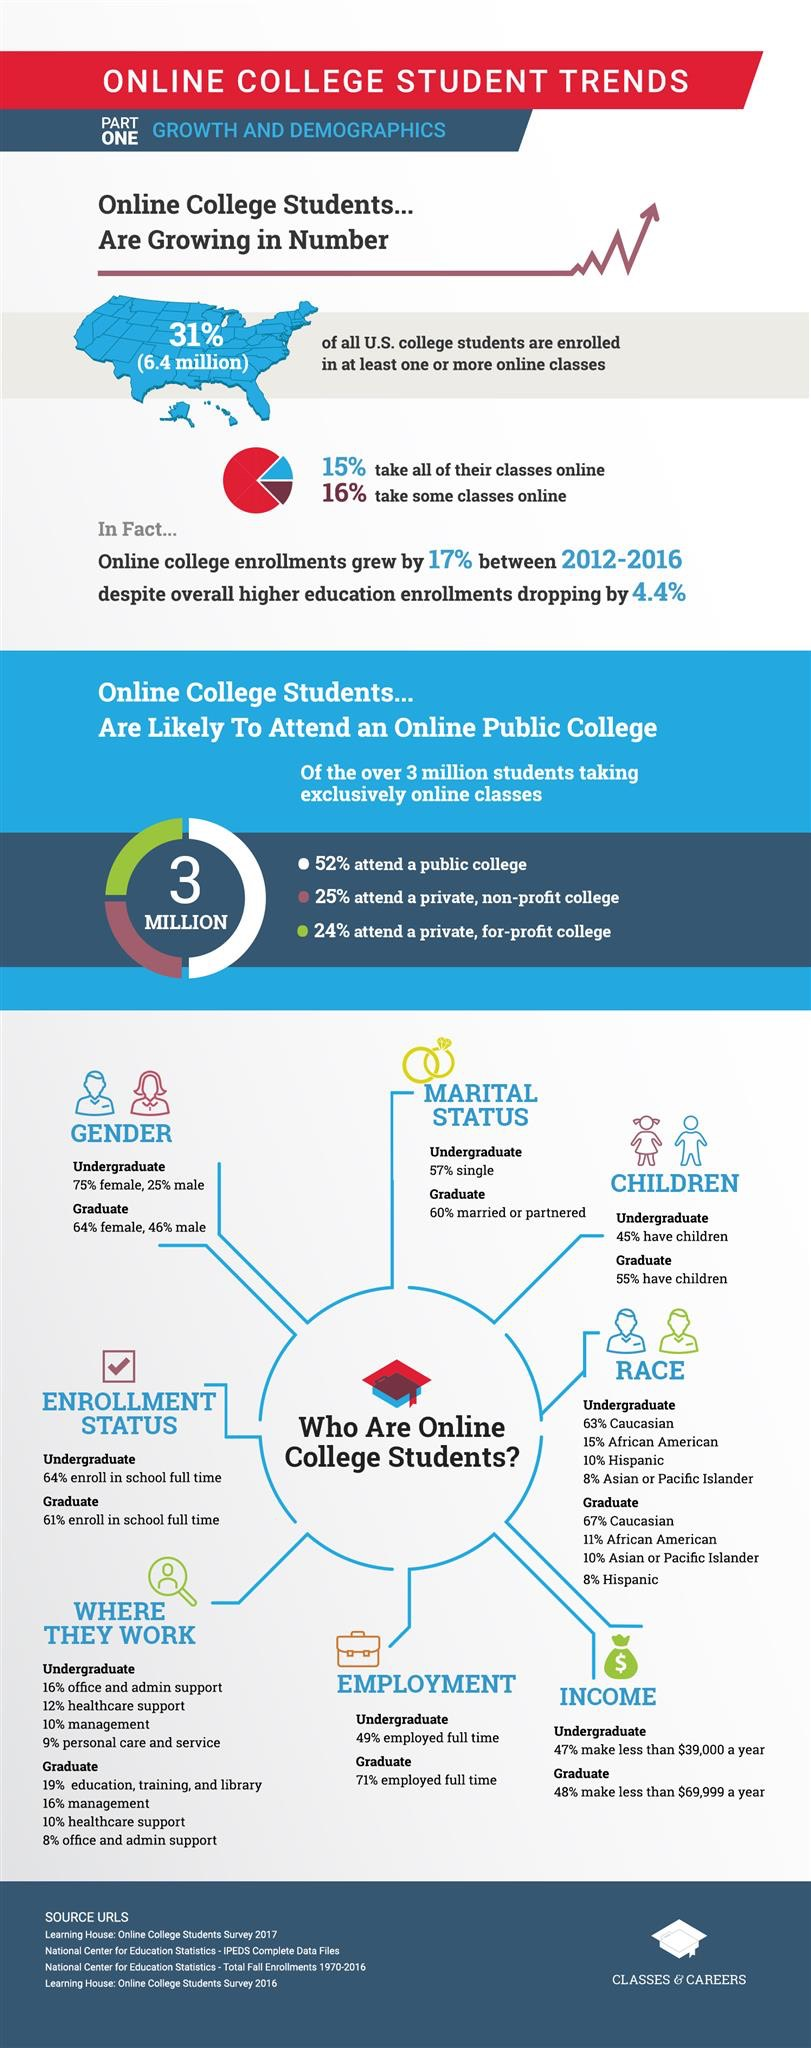 Online College Students Infographic Part 1: Growth and Demographics